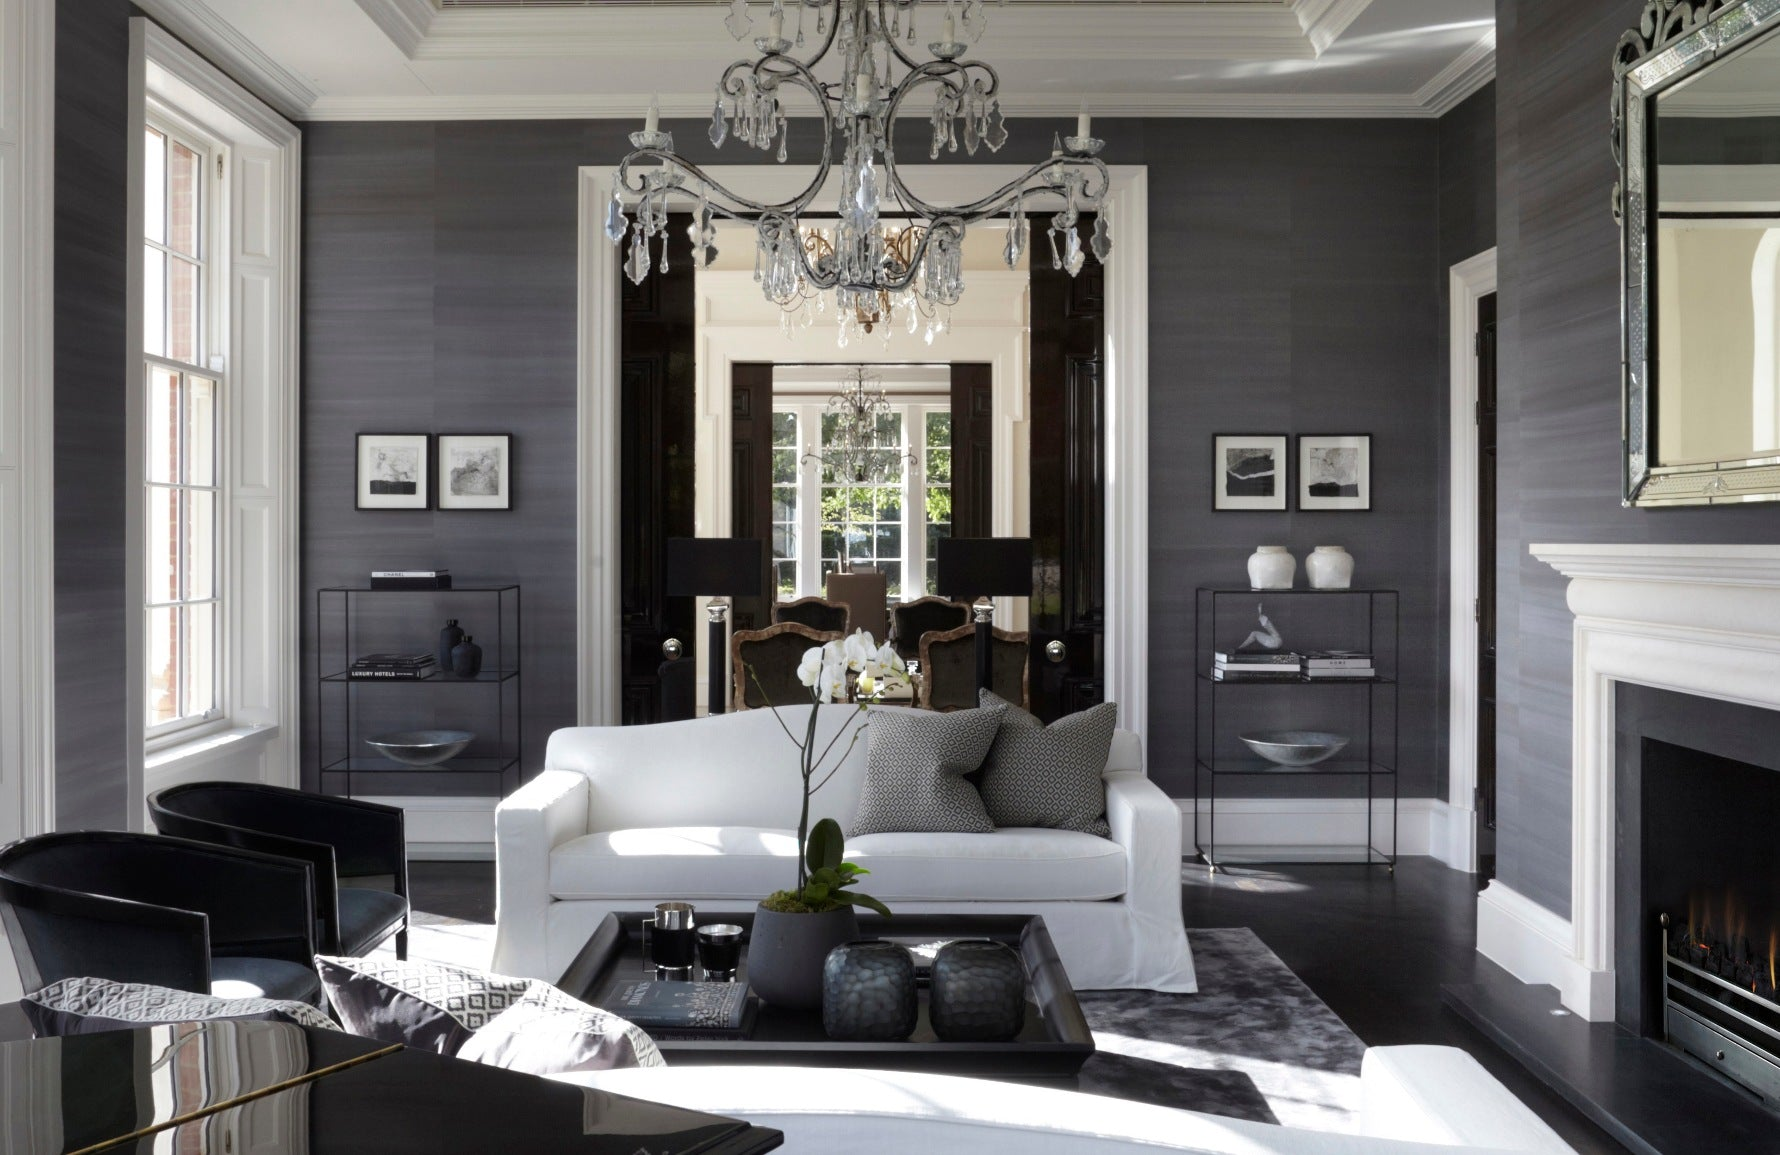 How To Style Your Sofa Cushions – Individual cushion arrangement – Shop Luxury Cushions at LuxDeco.com